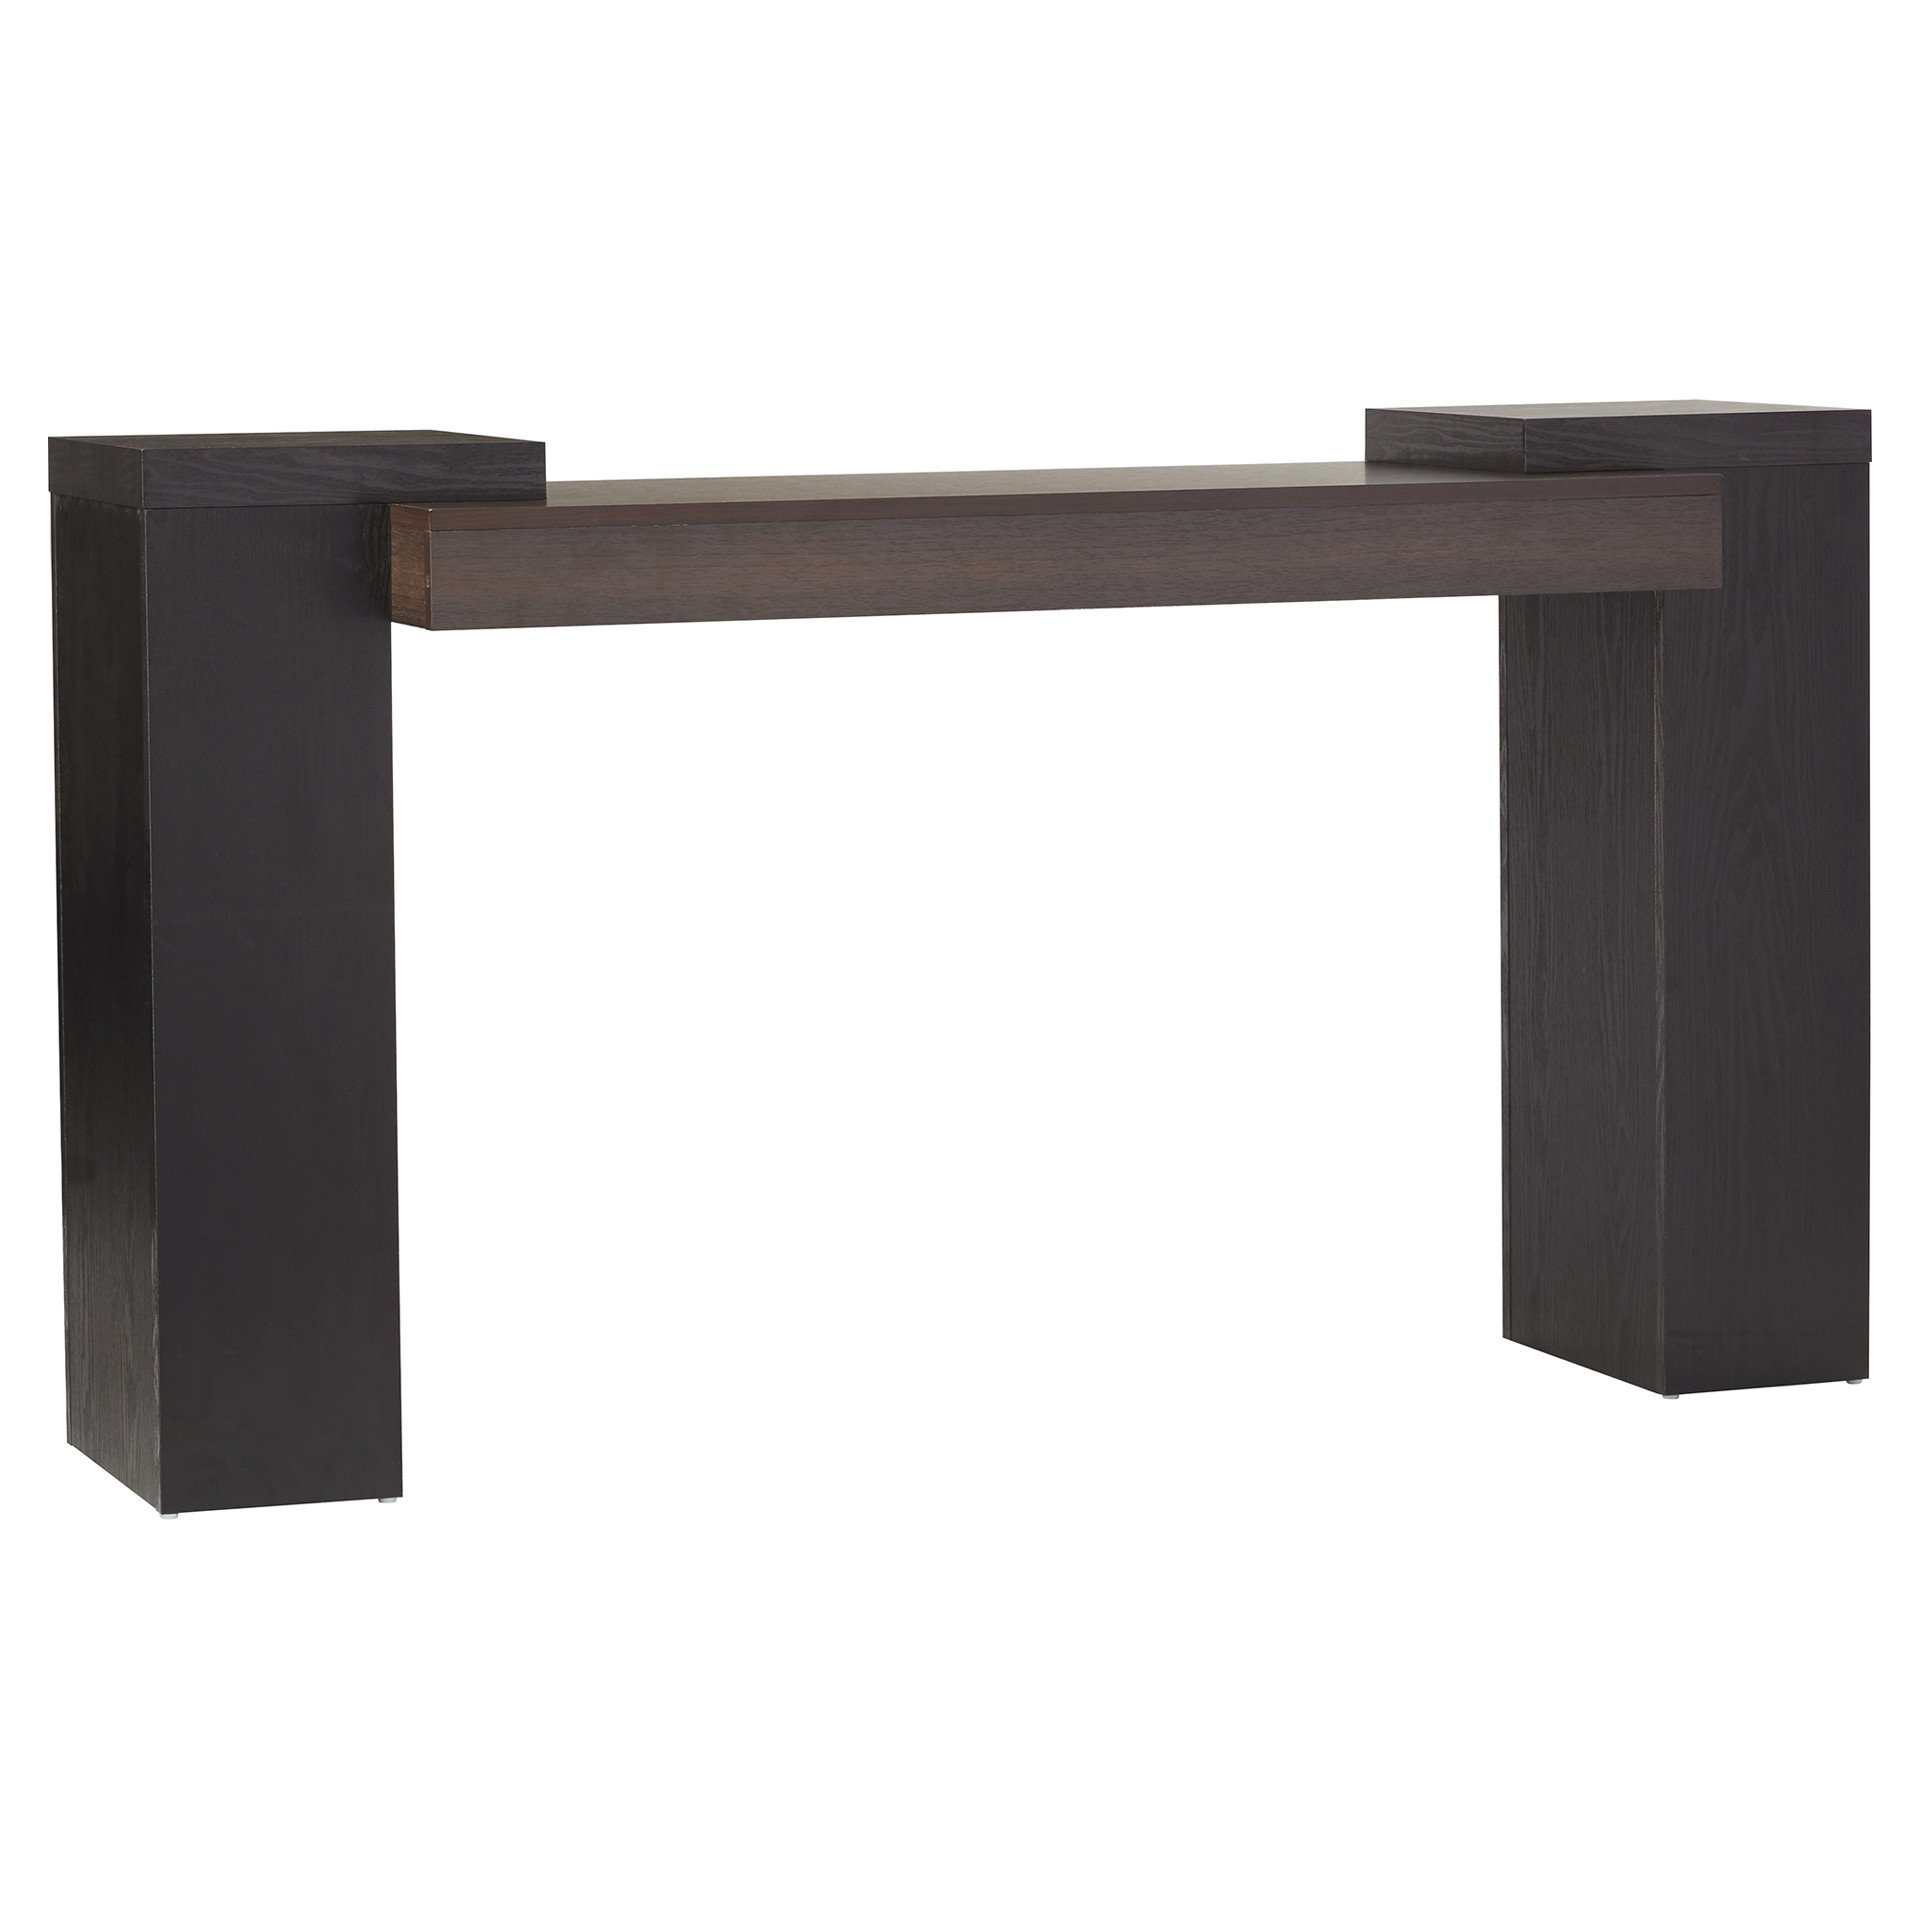 Classic Narrow Wooden Veneer Console Table in Black/ Cappuccino